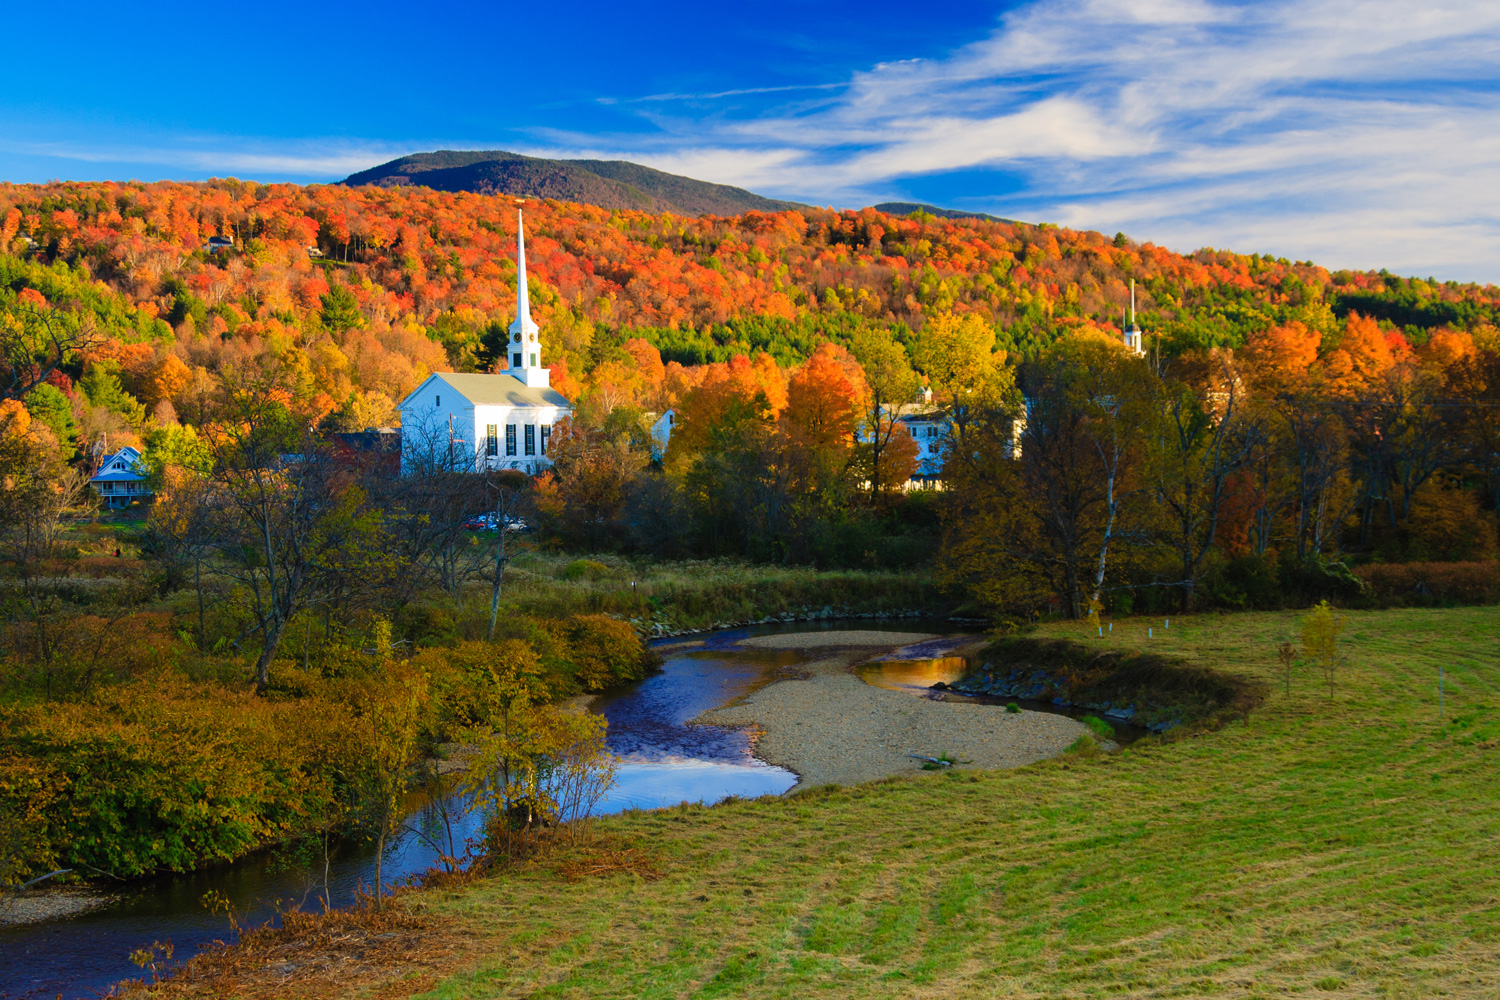 Fall Foliage surrounding the Stowe Community Church, Stowe, Vermont, USA